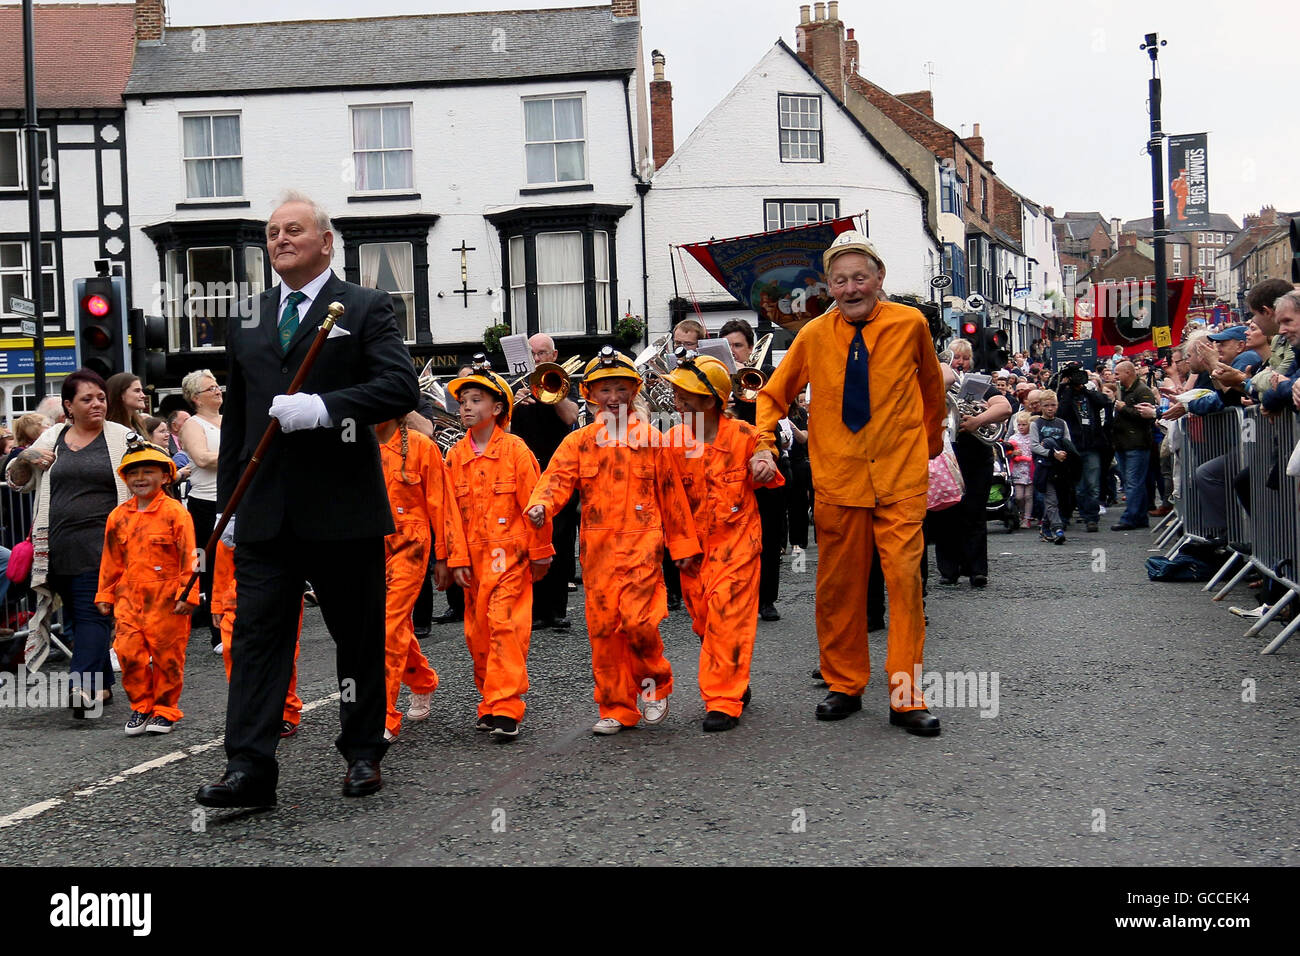 Durham, UK  9th July, 2016  A 90 year old miner leads the